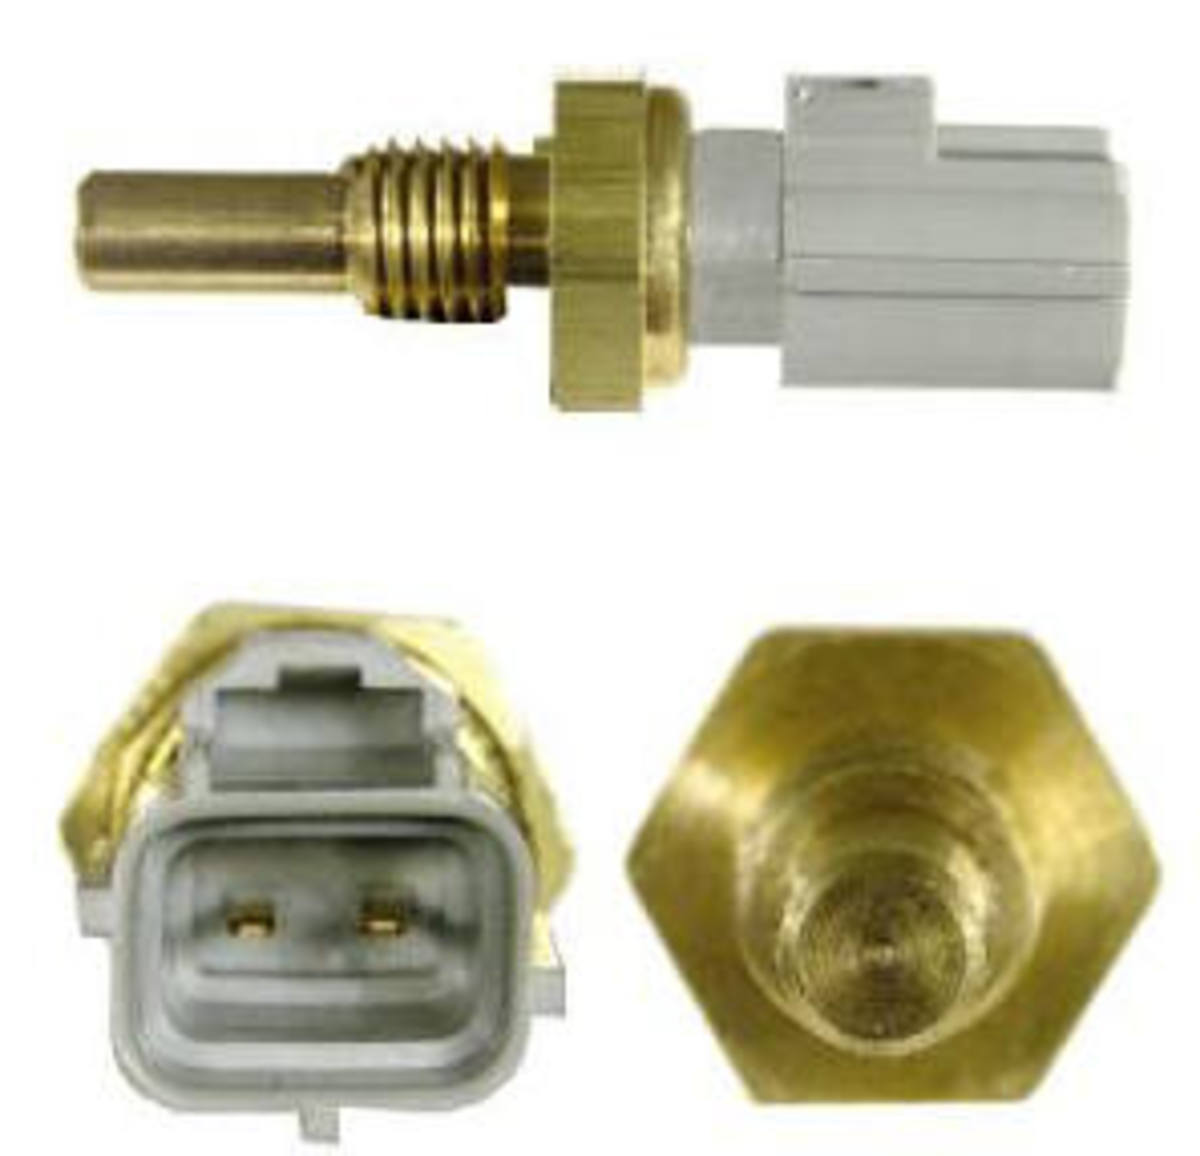 97 01 Toyota Camry Thermostat Replacement moreover Best Places Aftermarket Mechanical Temperature Oil Gauges 22re 261213 additionally RepairGuideContent also Toyota Camry 2008 Oil Leak 2570 together with  on toyota 1zz engine coolant drain location